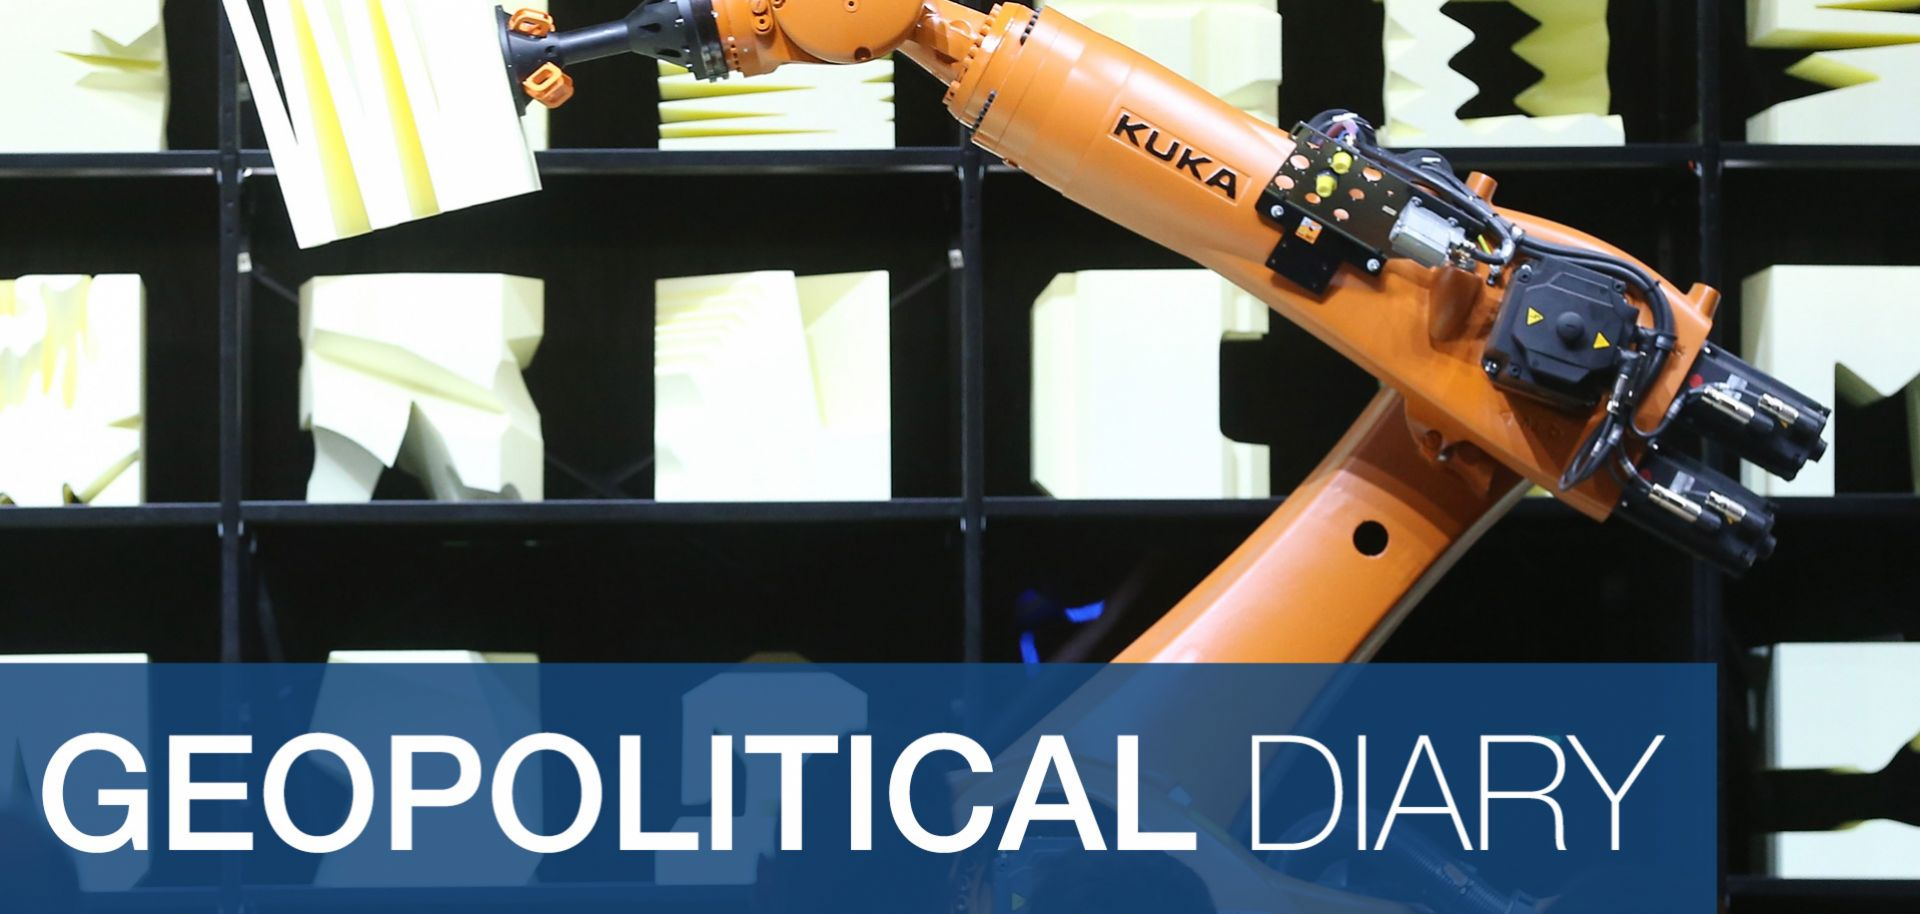 Germany's Kuka AG is the world's largest manufacturer of robotics for the automobile industry.